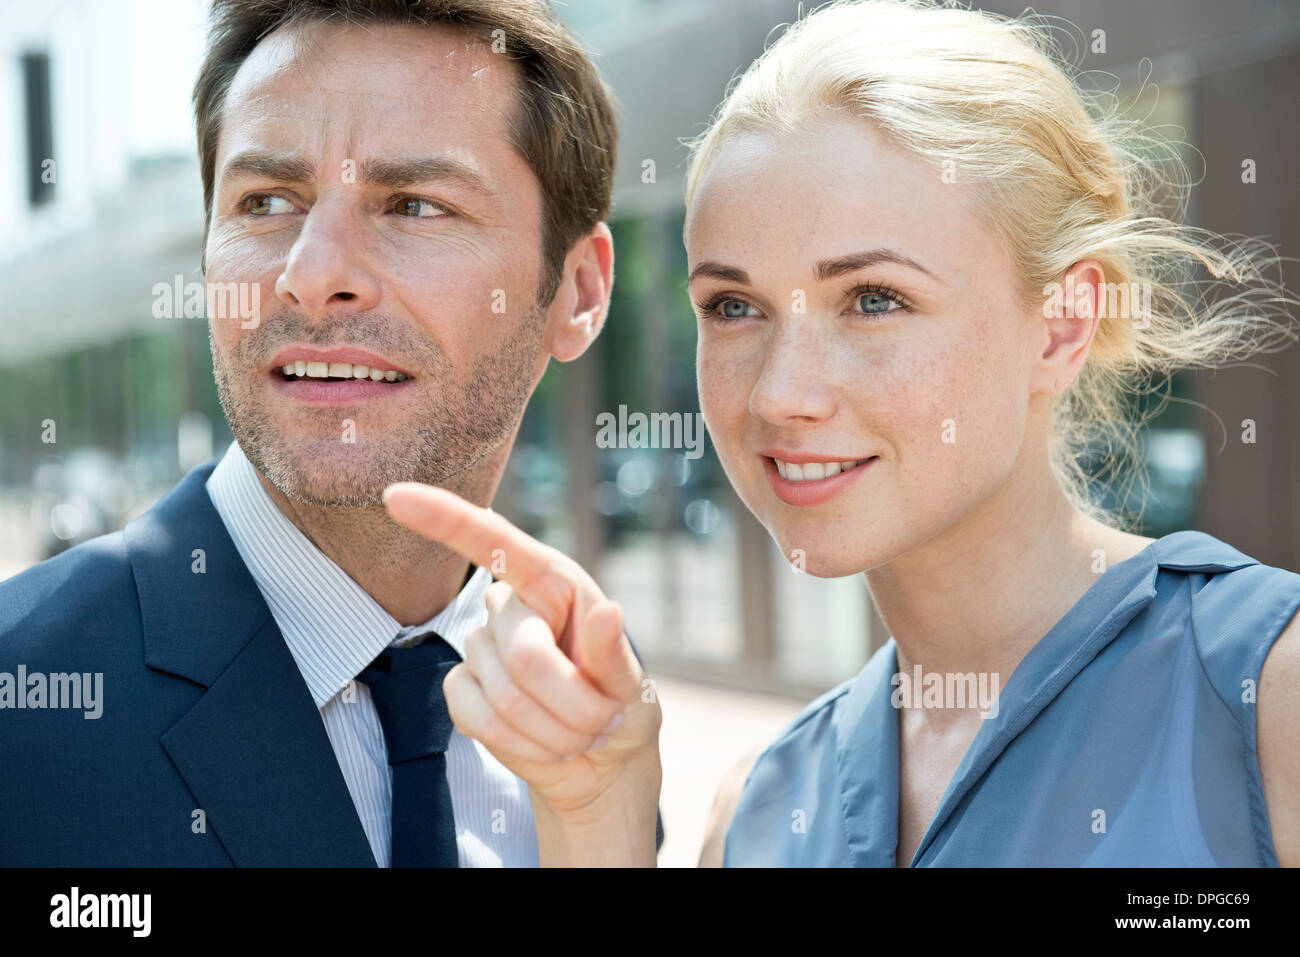 Real estate agent showing property to potential buyer - Stock Image